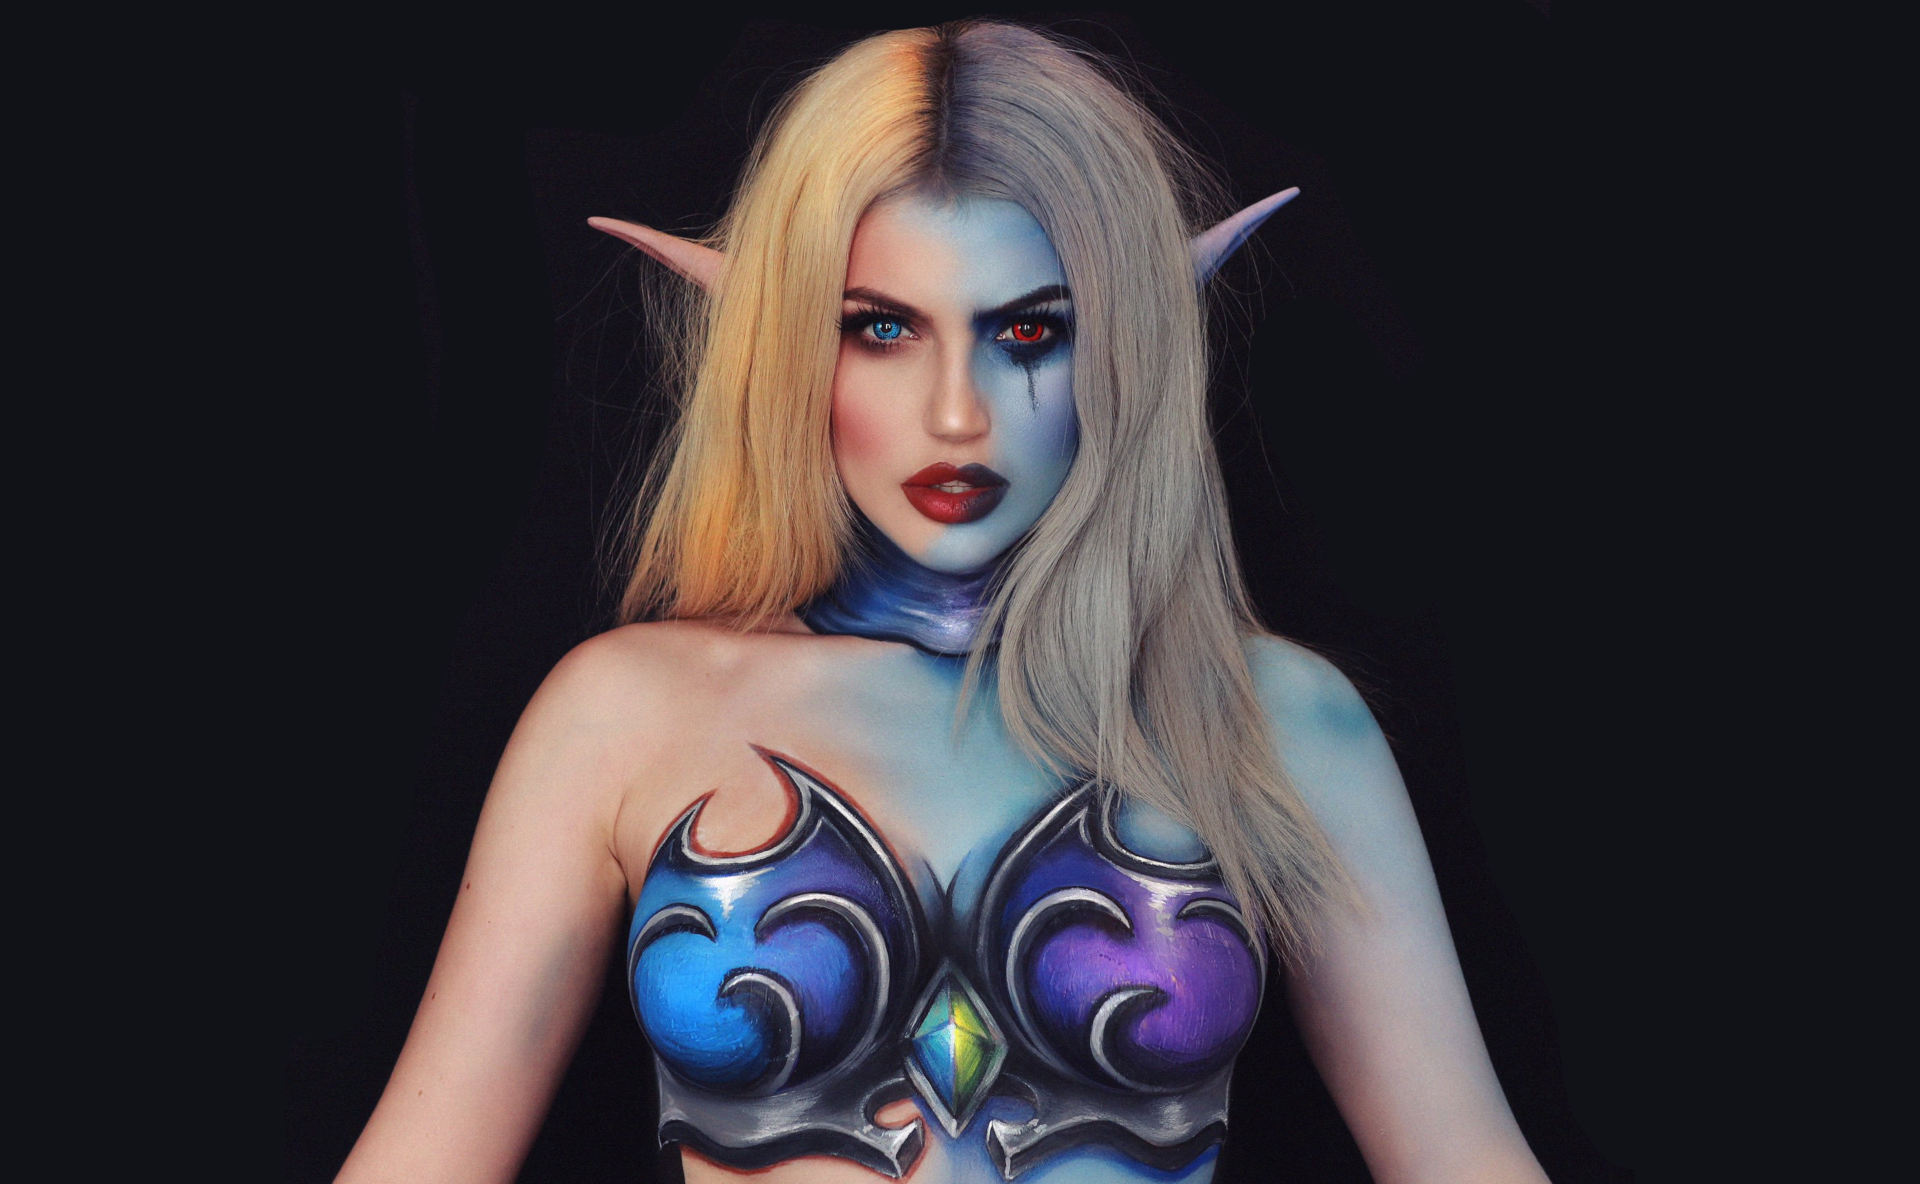 Twitch Streamer Explains Why Painting Her Body On Camera Isn't Sexual